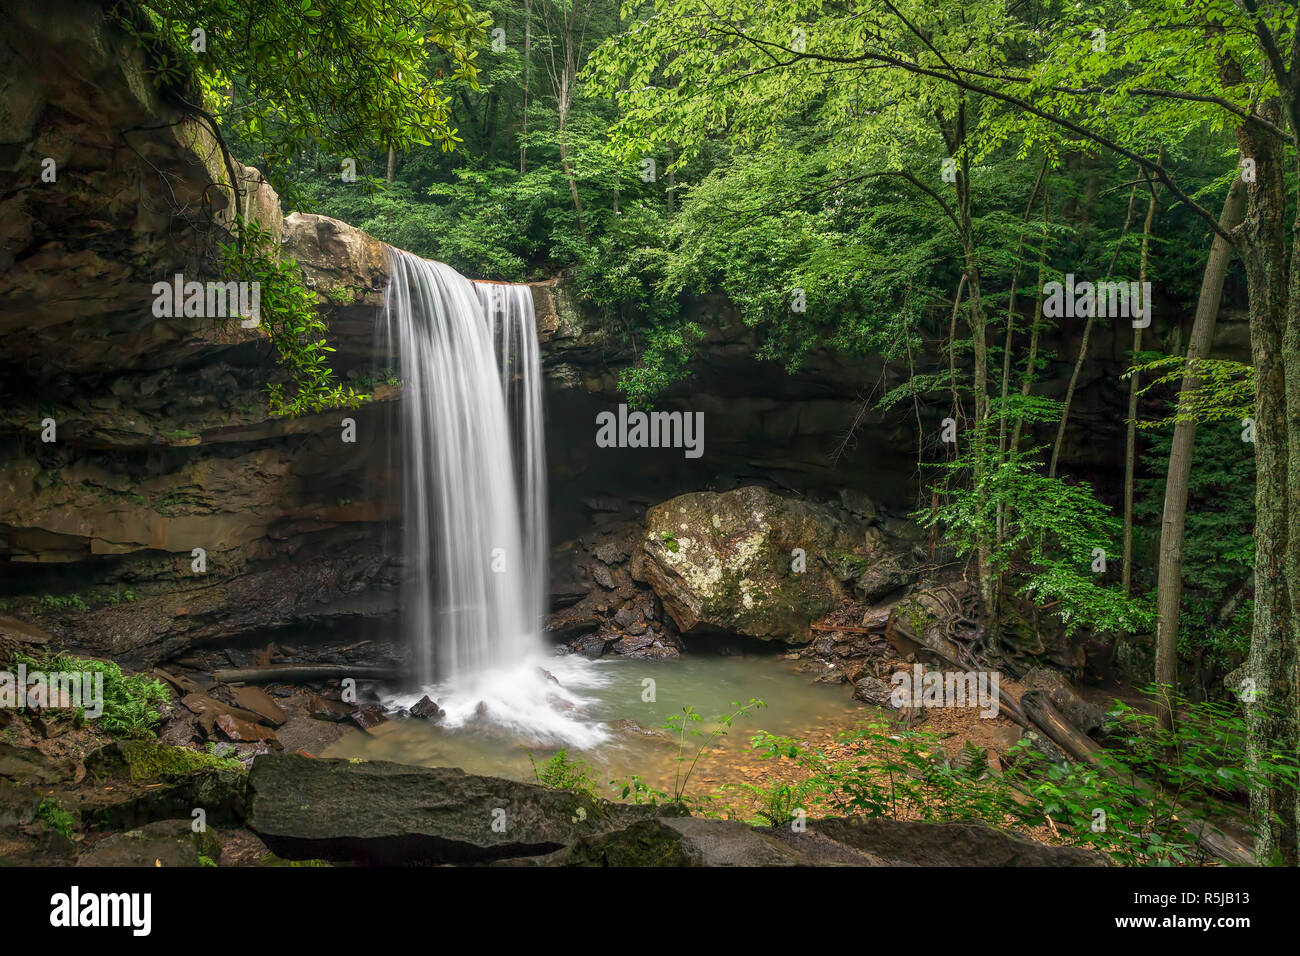 Cucumber Falls, a beautiful waterfall in Ohiopyle State Park plunges over a tall cliff in an Appalachian forest the Laurel Highlands of Pennsylvania. Stock Photo